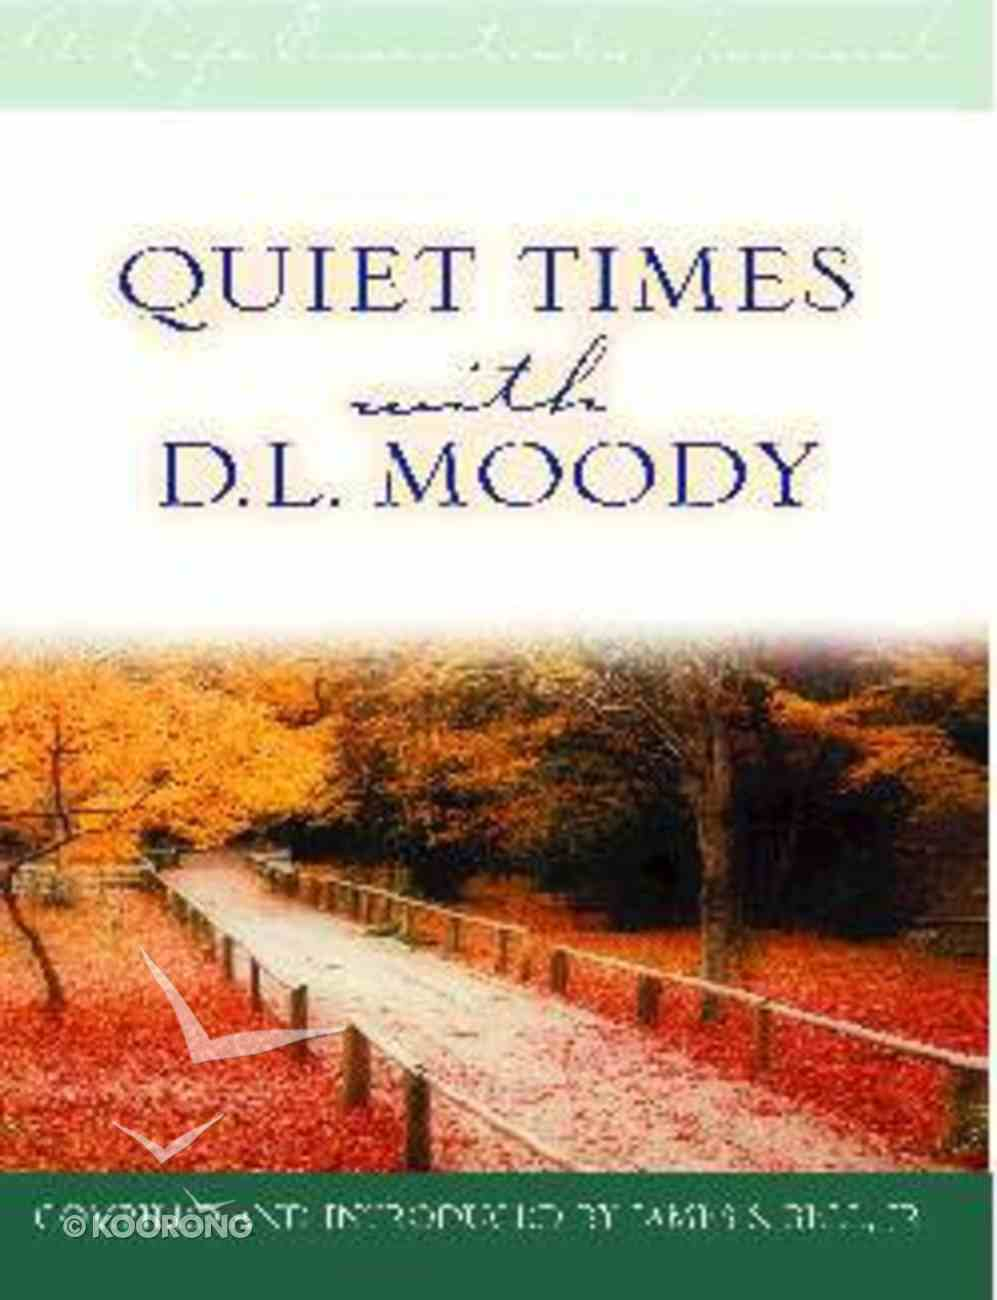 Quiet Times With D L Moody Hardback